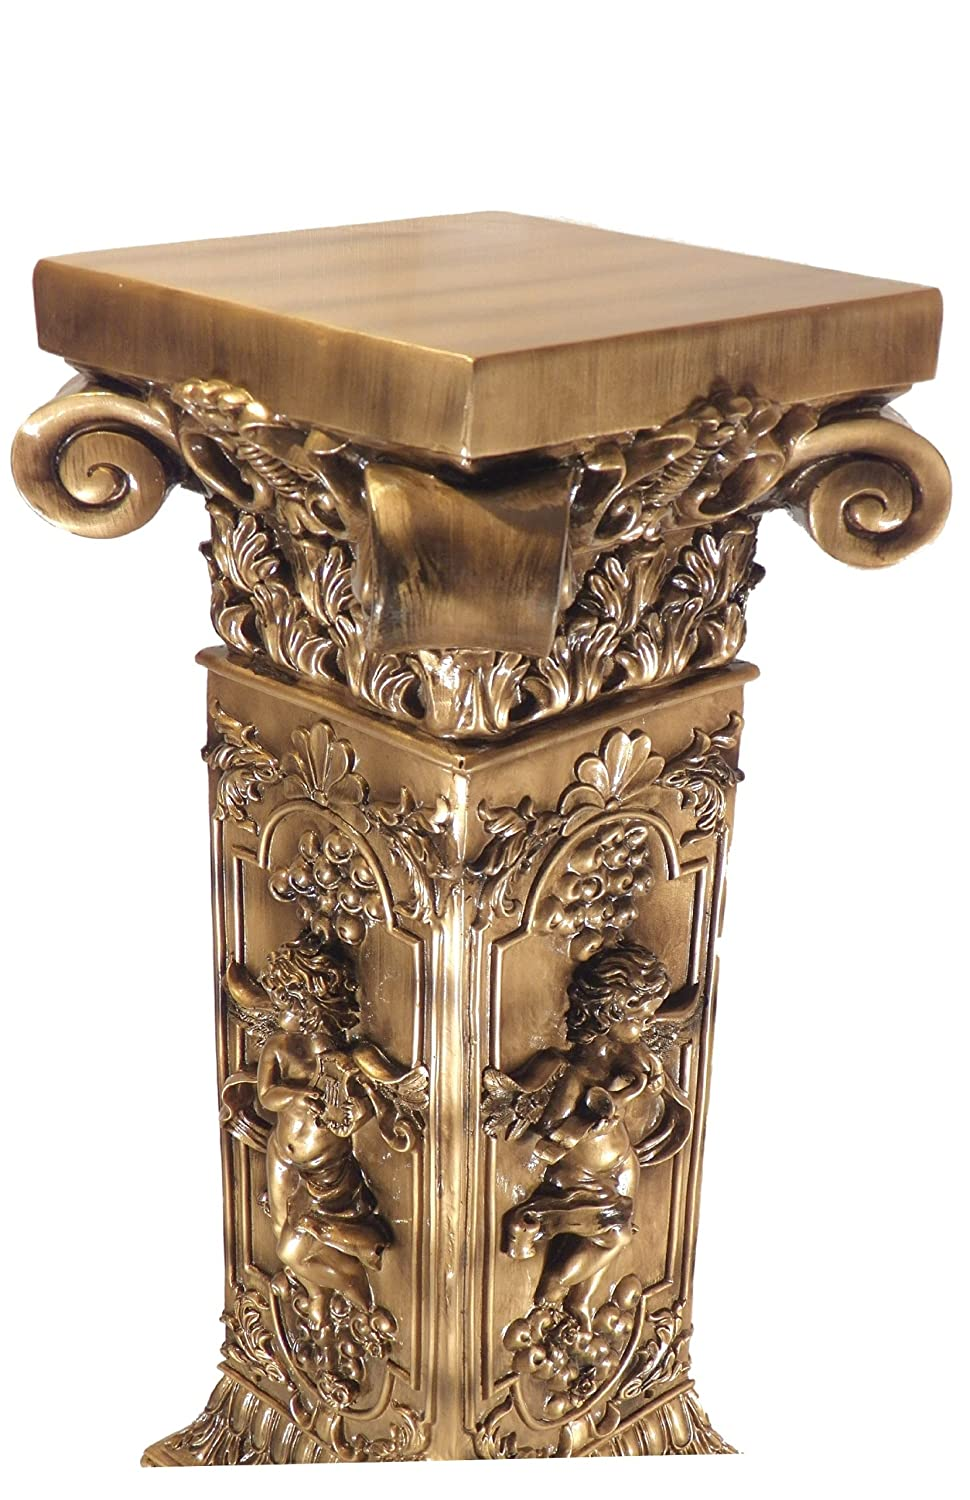 Amazoncom French Golden Floor Table Plant Stand Furniture - Column pedestal plant stand